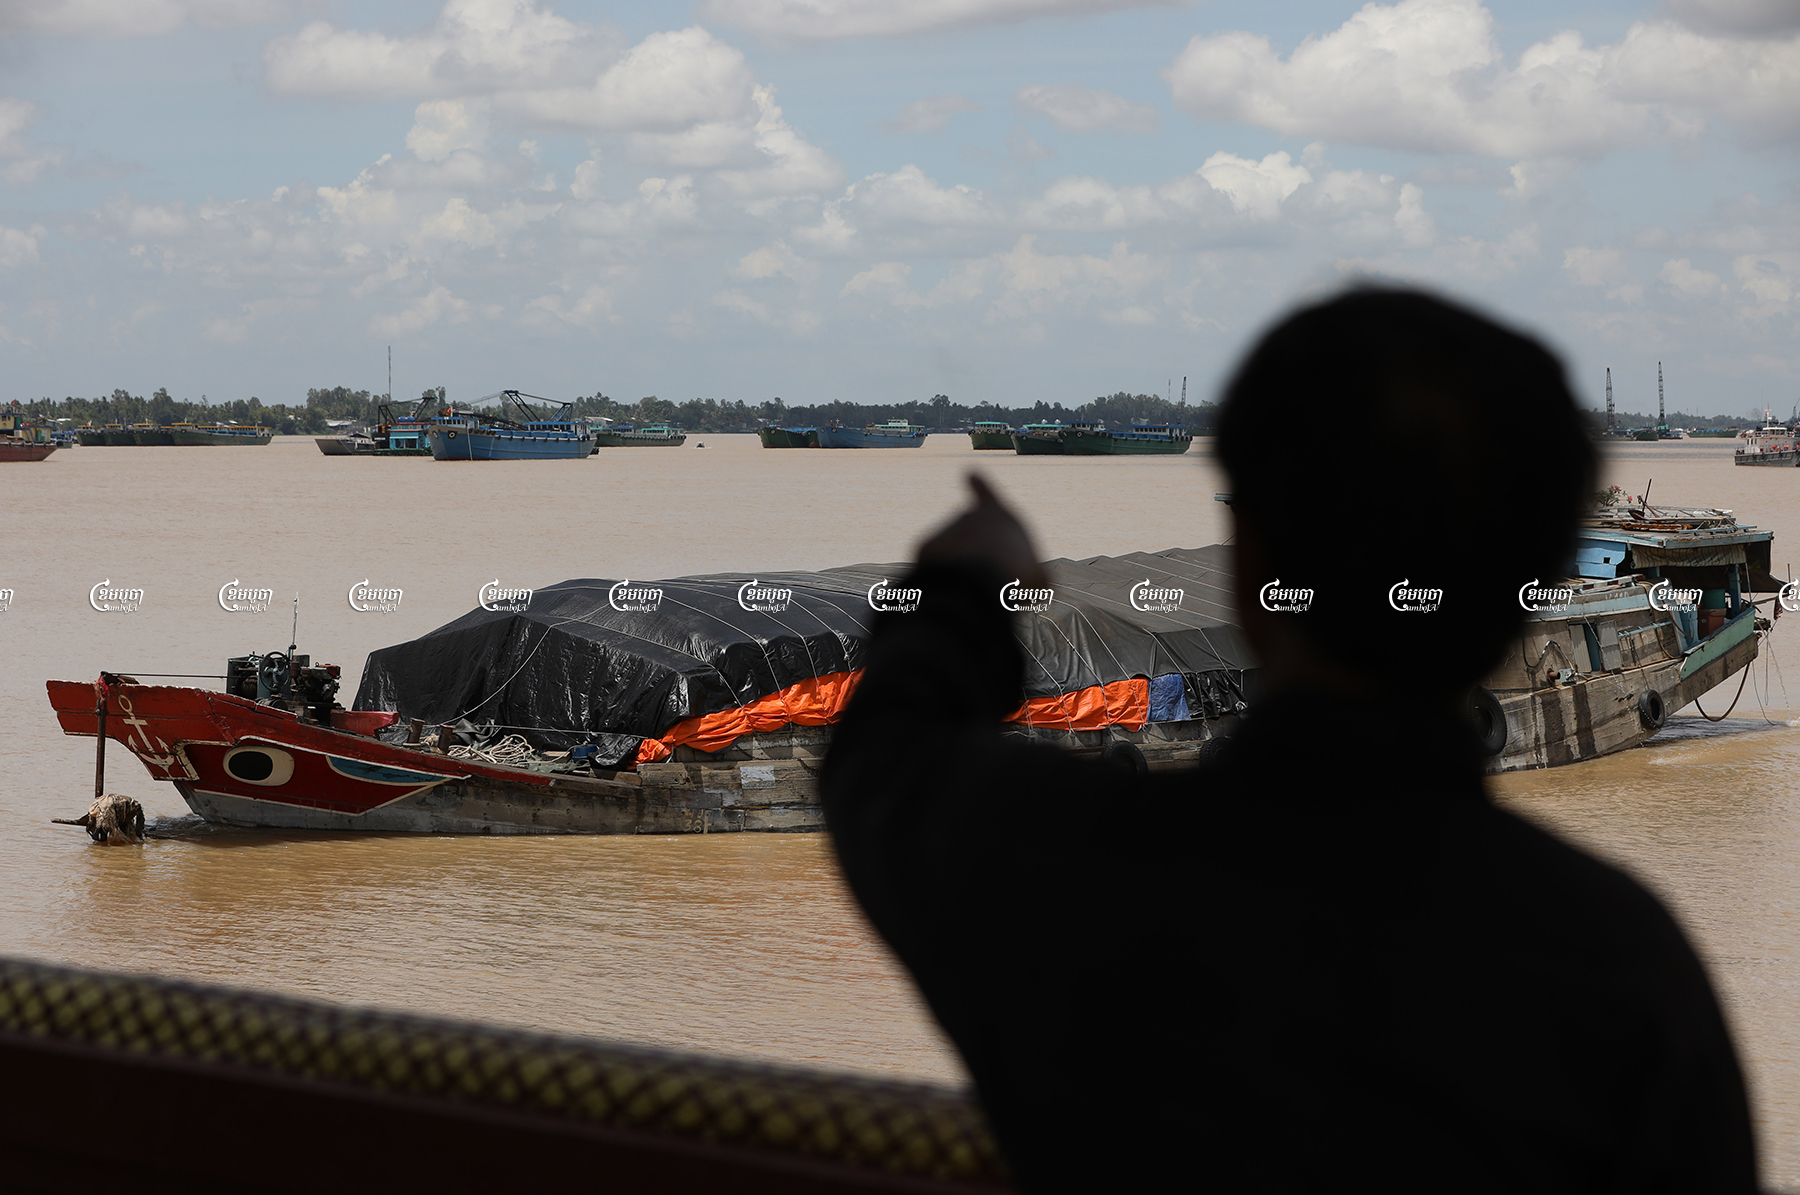 Vietnamese authorities use sand dredging boats to block the entry of floating houses through the aquatic border in the Mekong River at the Ka'am Samnor checkpoint of Cambodia, June 28, 2021. CamboJA/ Pring Samrang